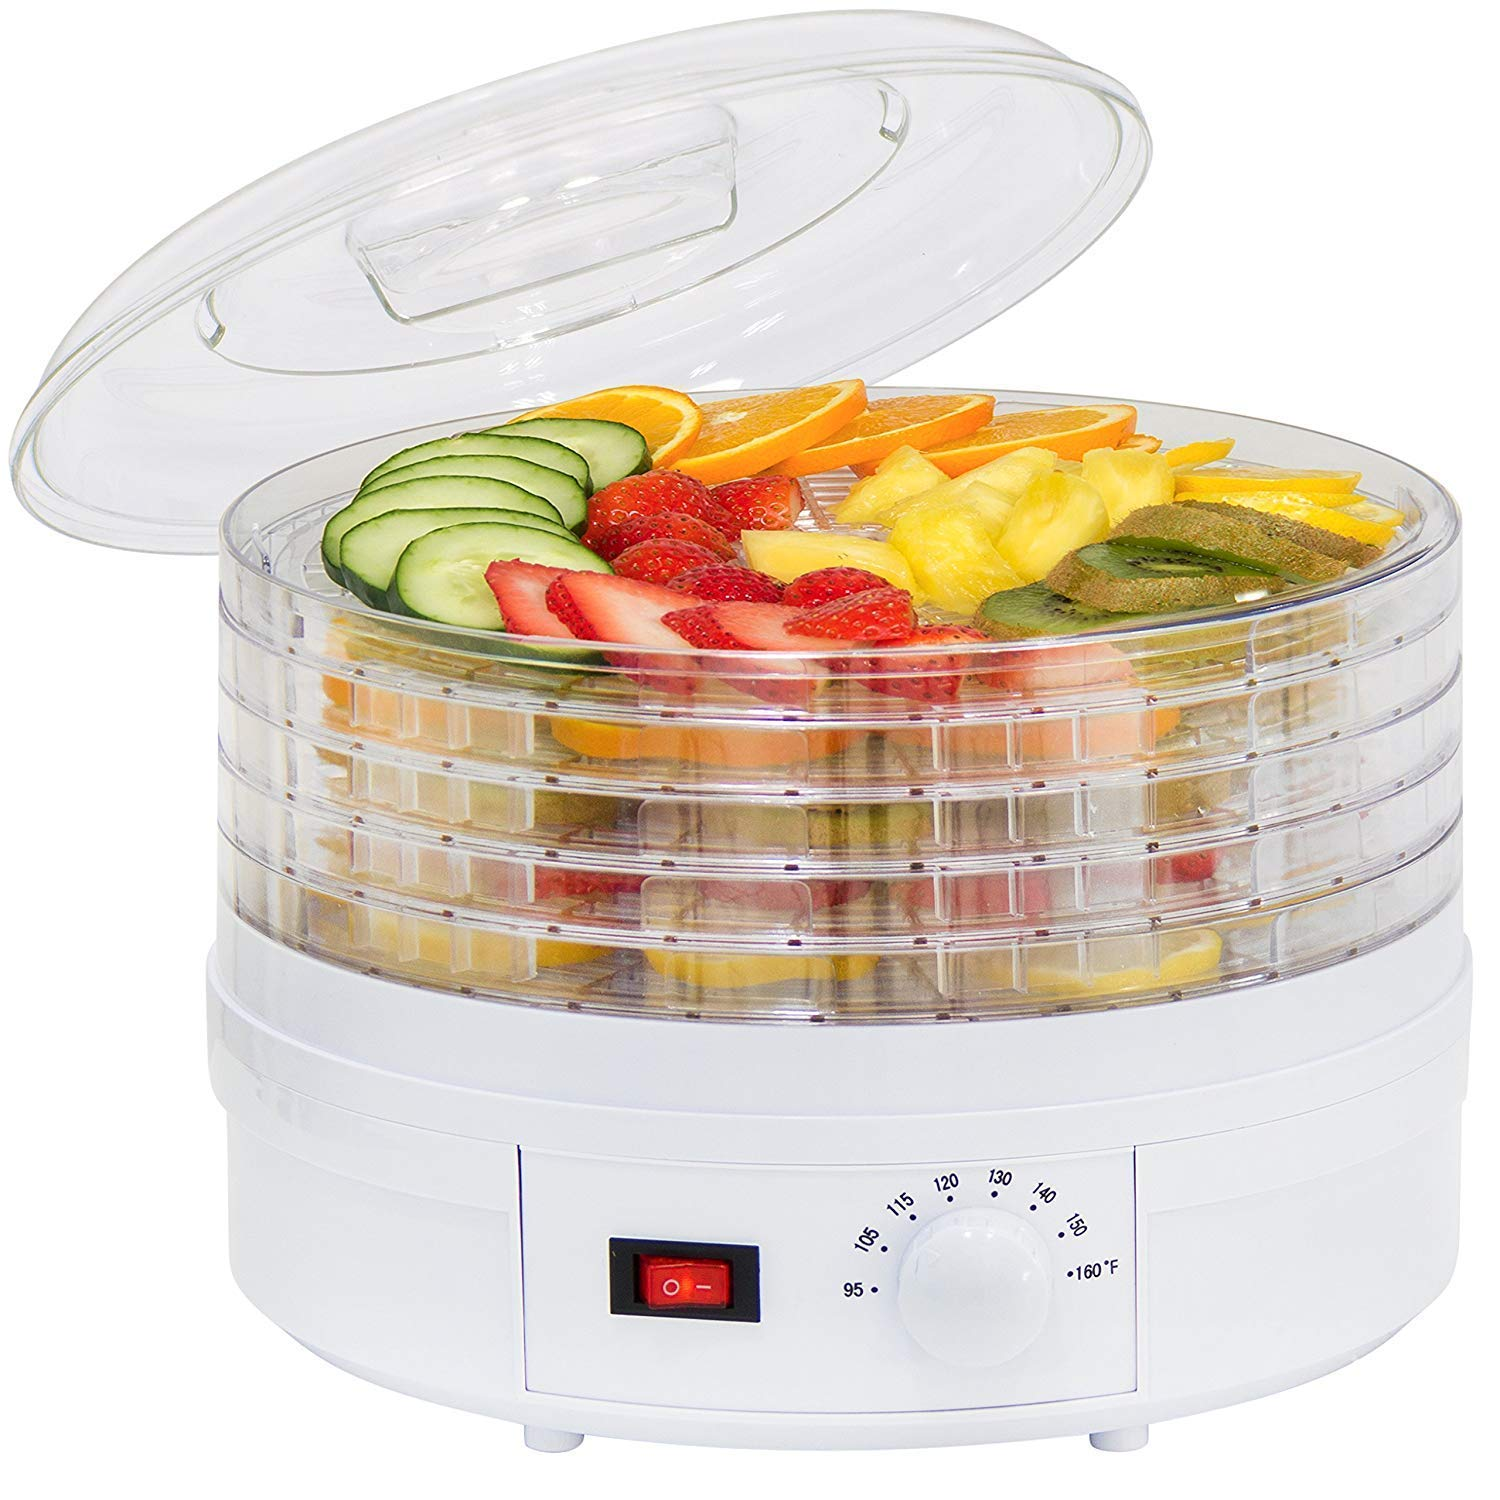 71B3%2BfLgO4L. SL1500 The 5 Best Food Dehydrator in India 2020 (Review)